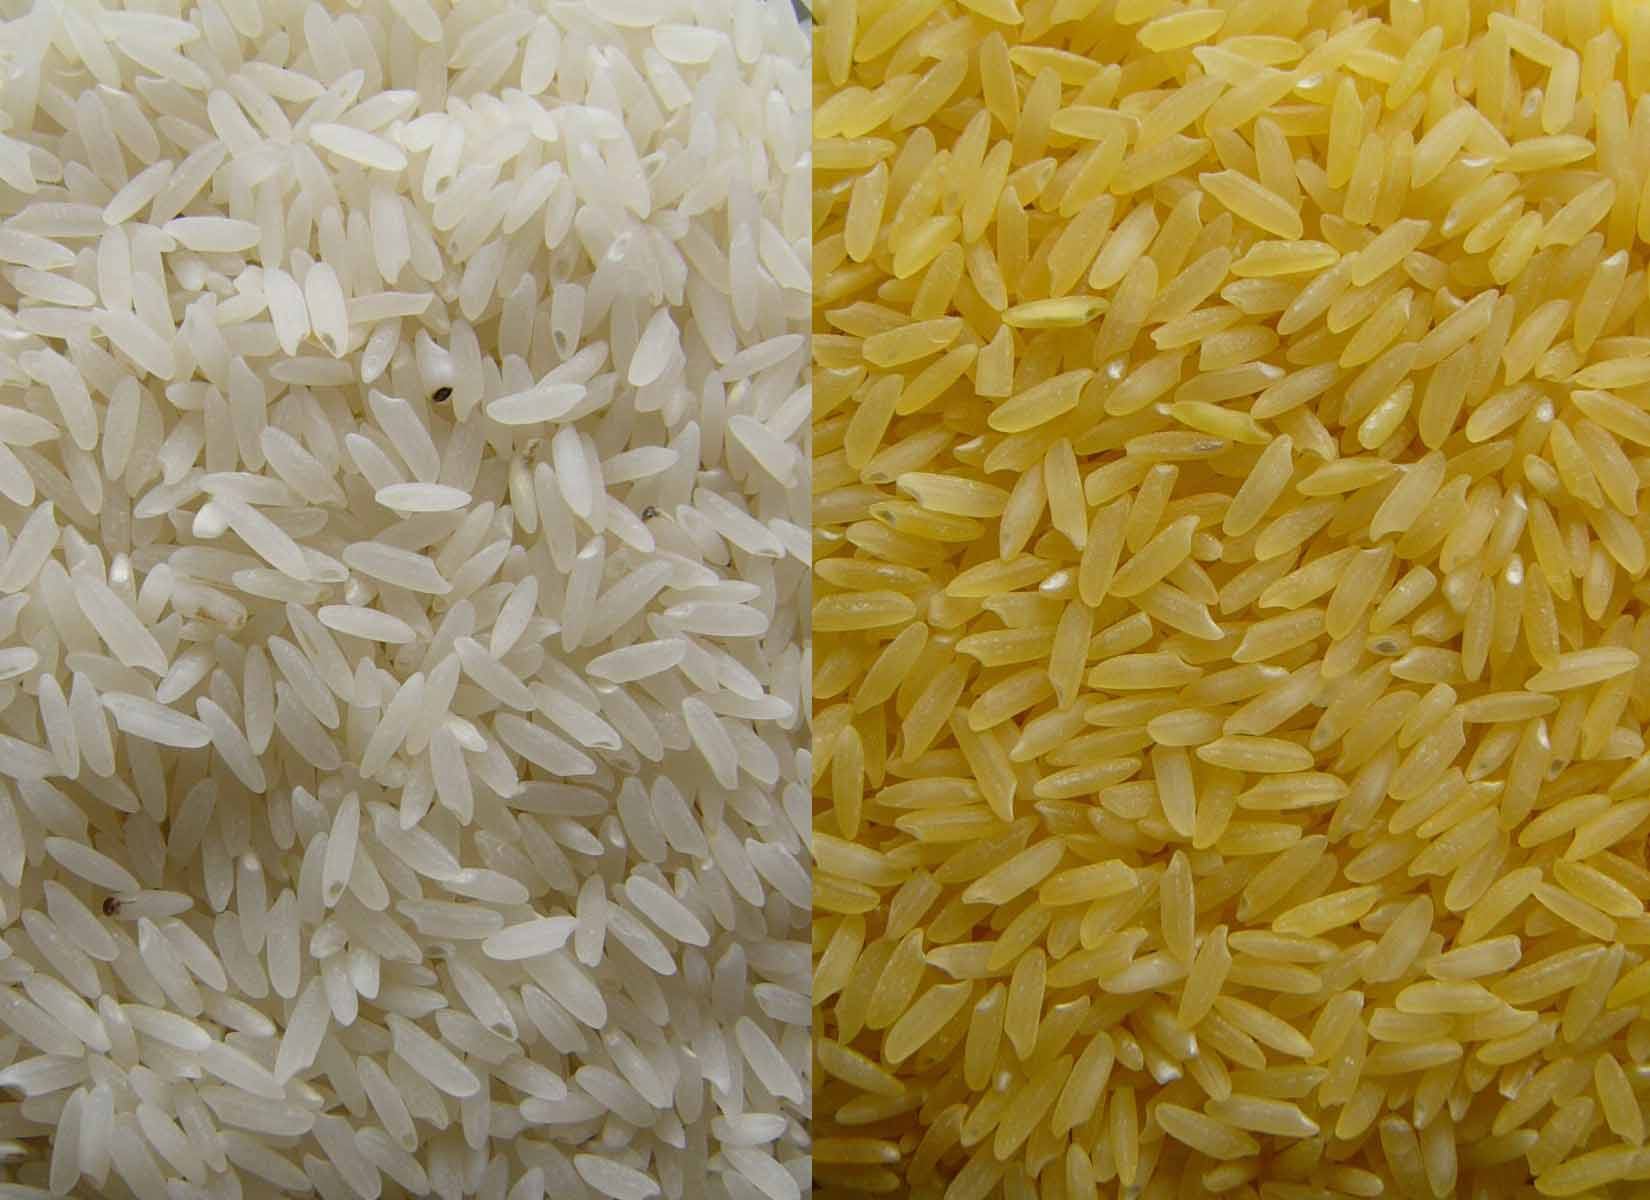 Which rice do you prefer?